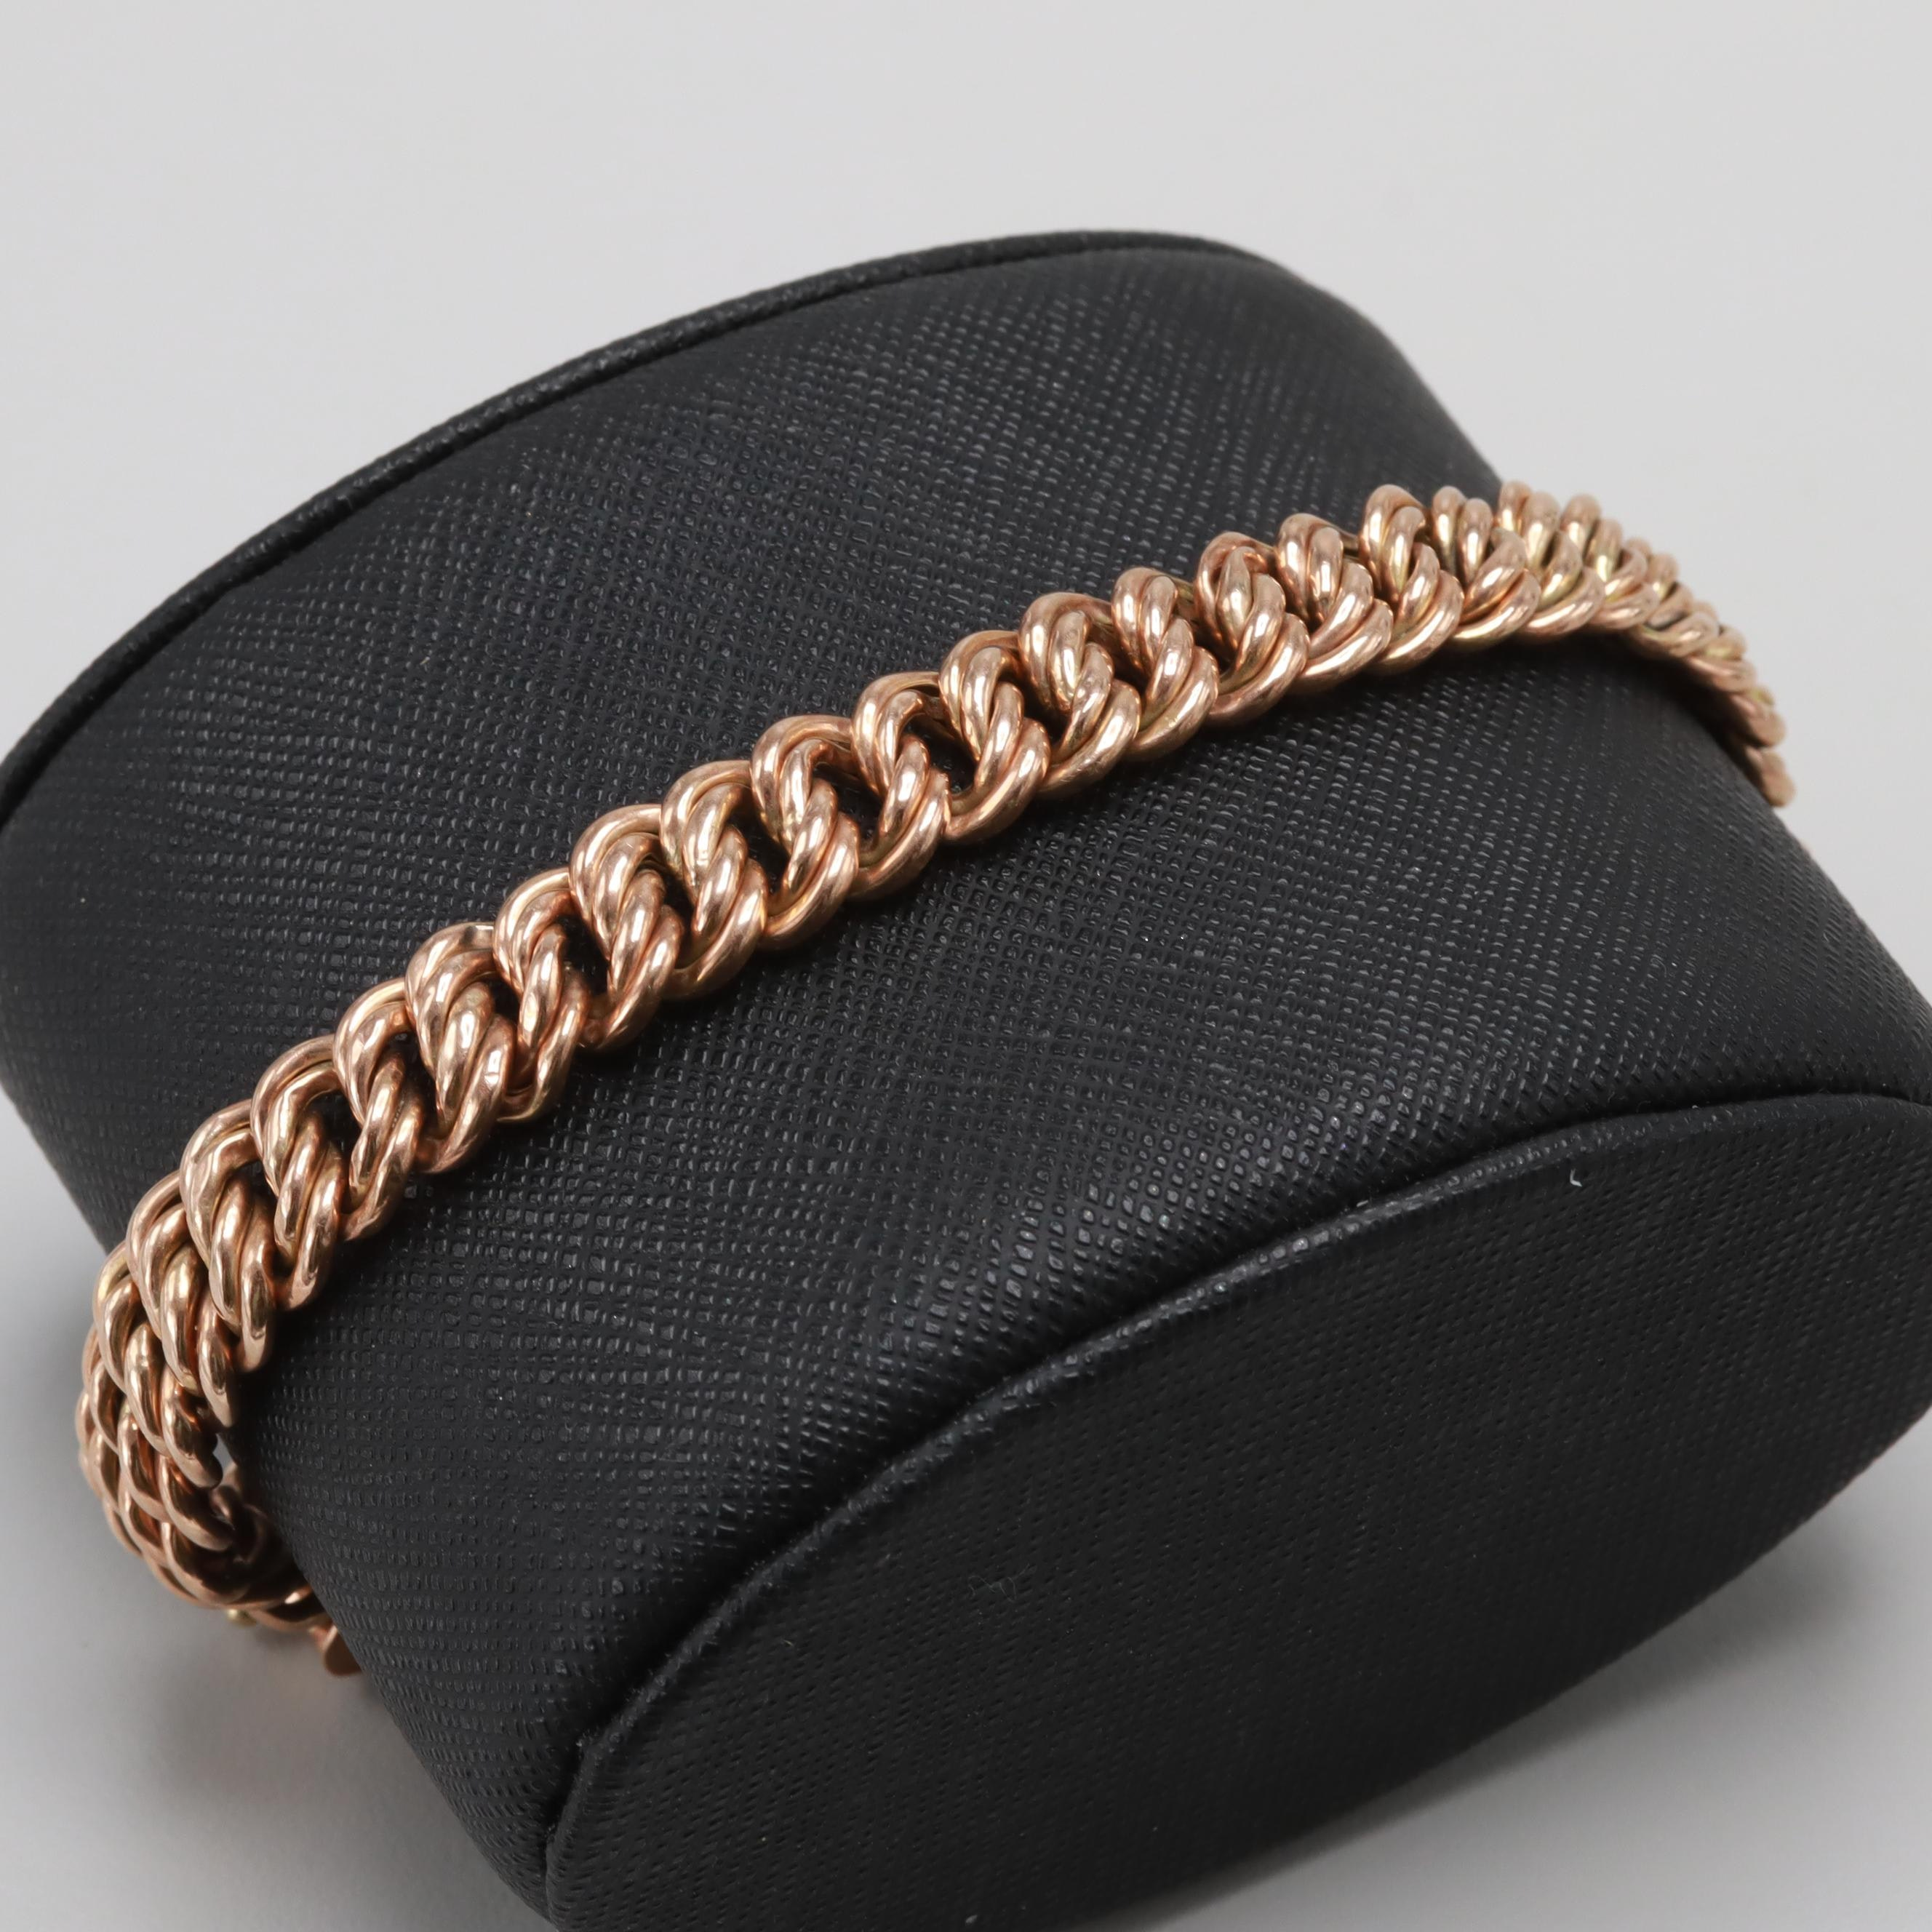 Antique 14K and 9K Rose Gold Bracelet with Safety Chain